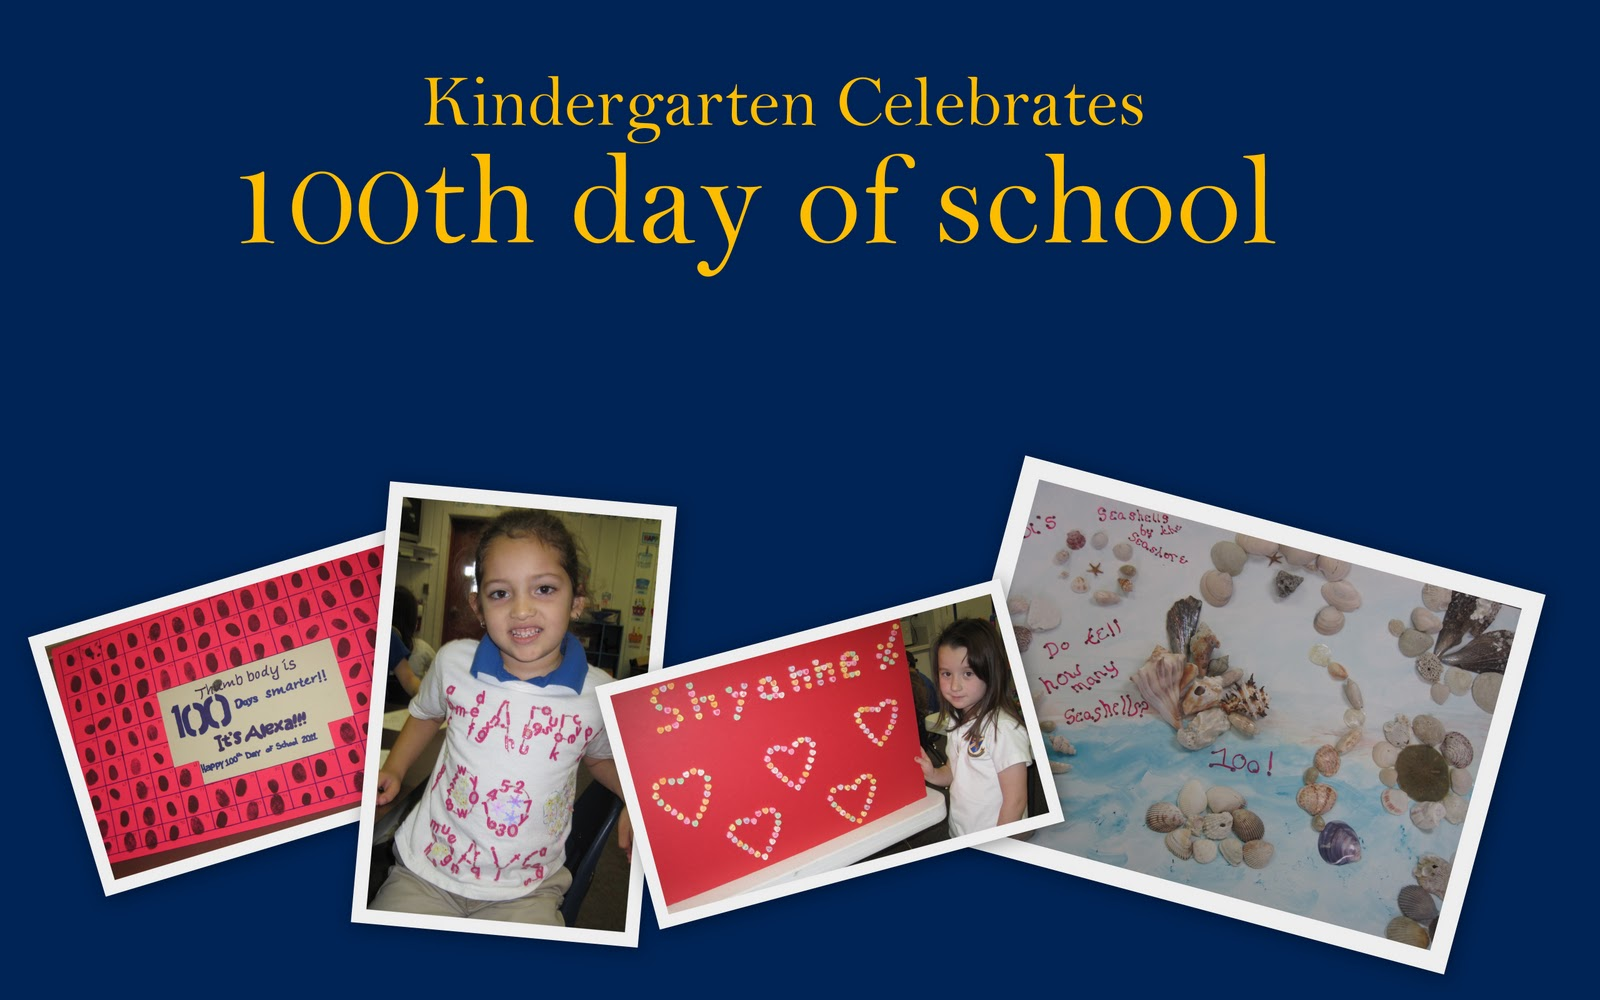 Blue Amp Gold Kindergarten Celebrates The 100th Day Of School